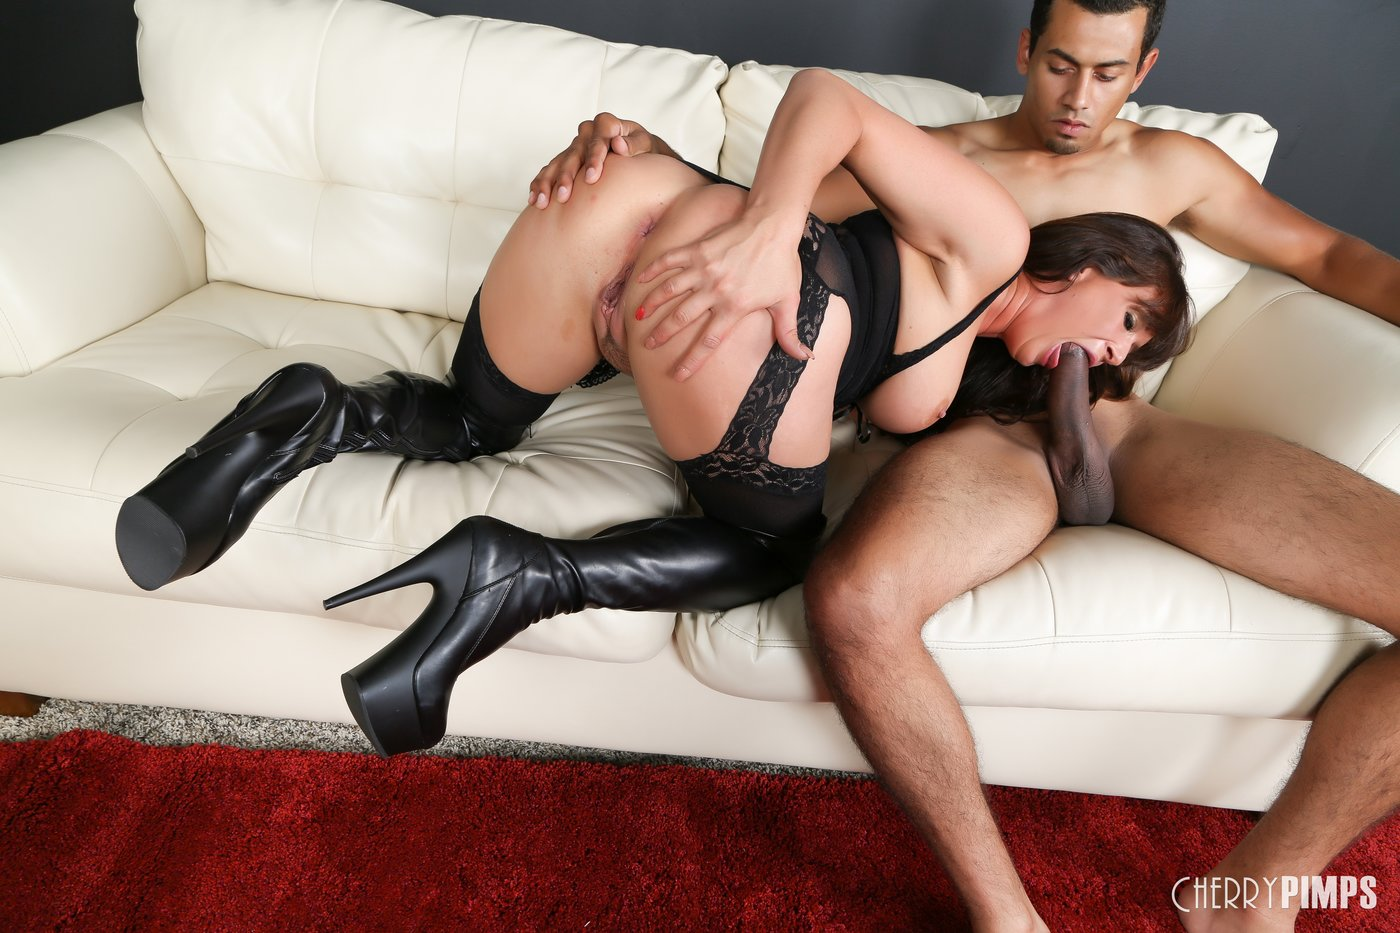 image Tory lane gets her pussy filled by chris johnson